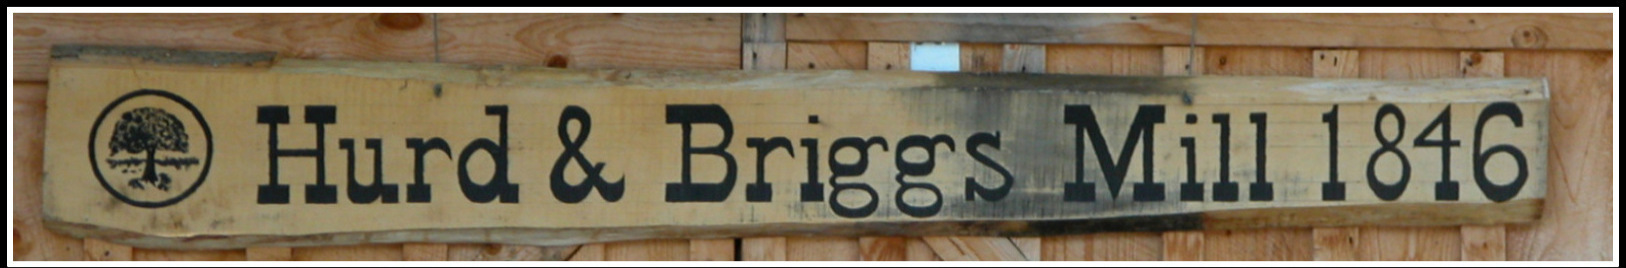 gallery/1846 Hurd and Briggs Sawmill sign image